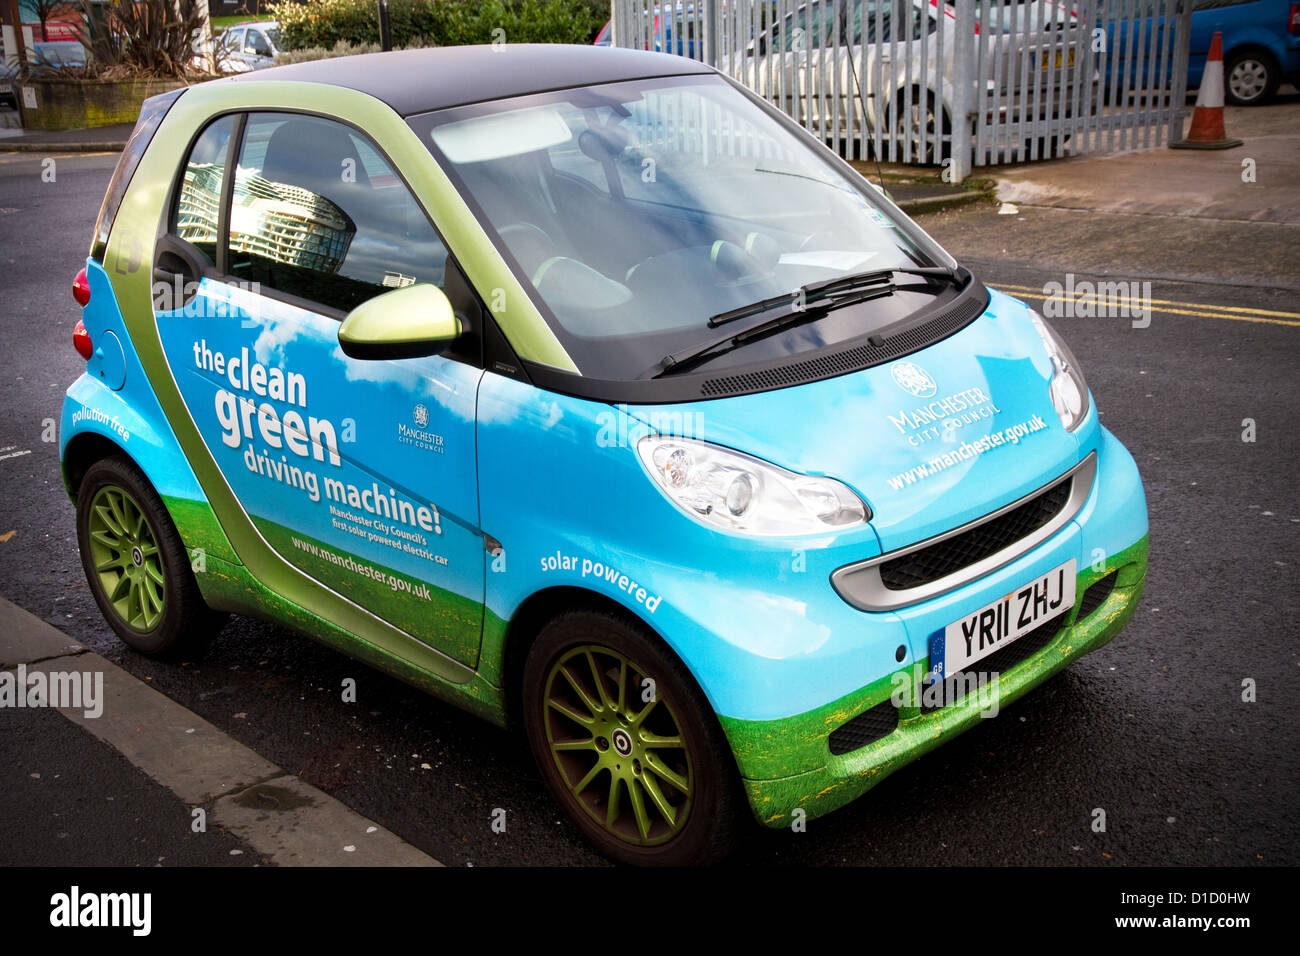 Electric vehicle used around the city by officers of Manchester City Council, England, UK. - Stock Image